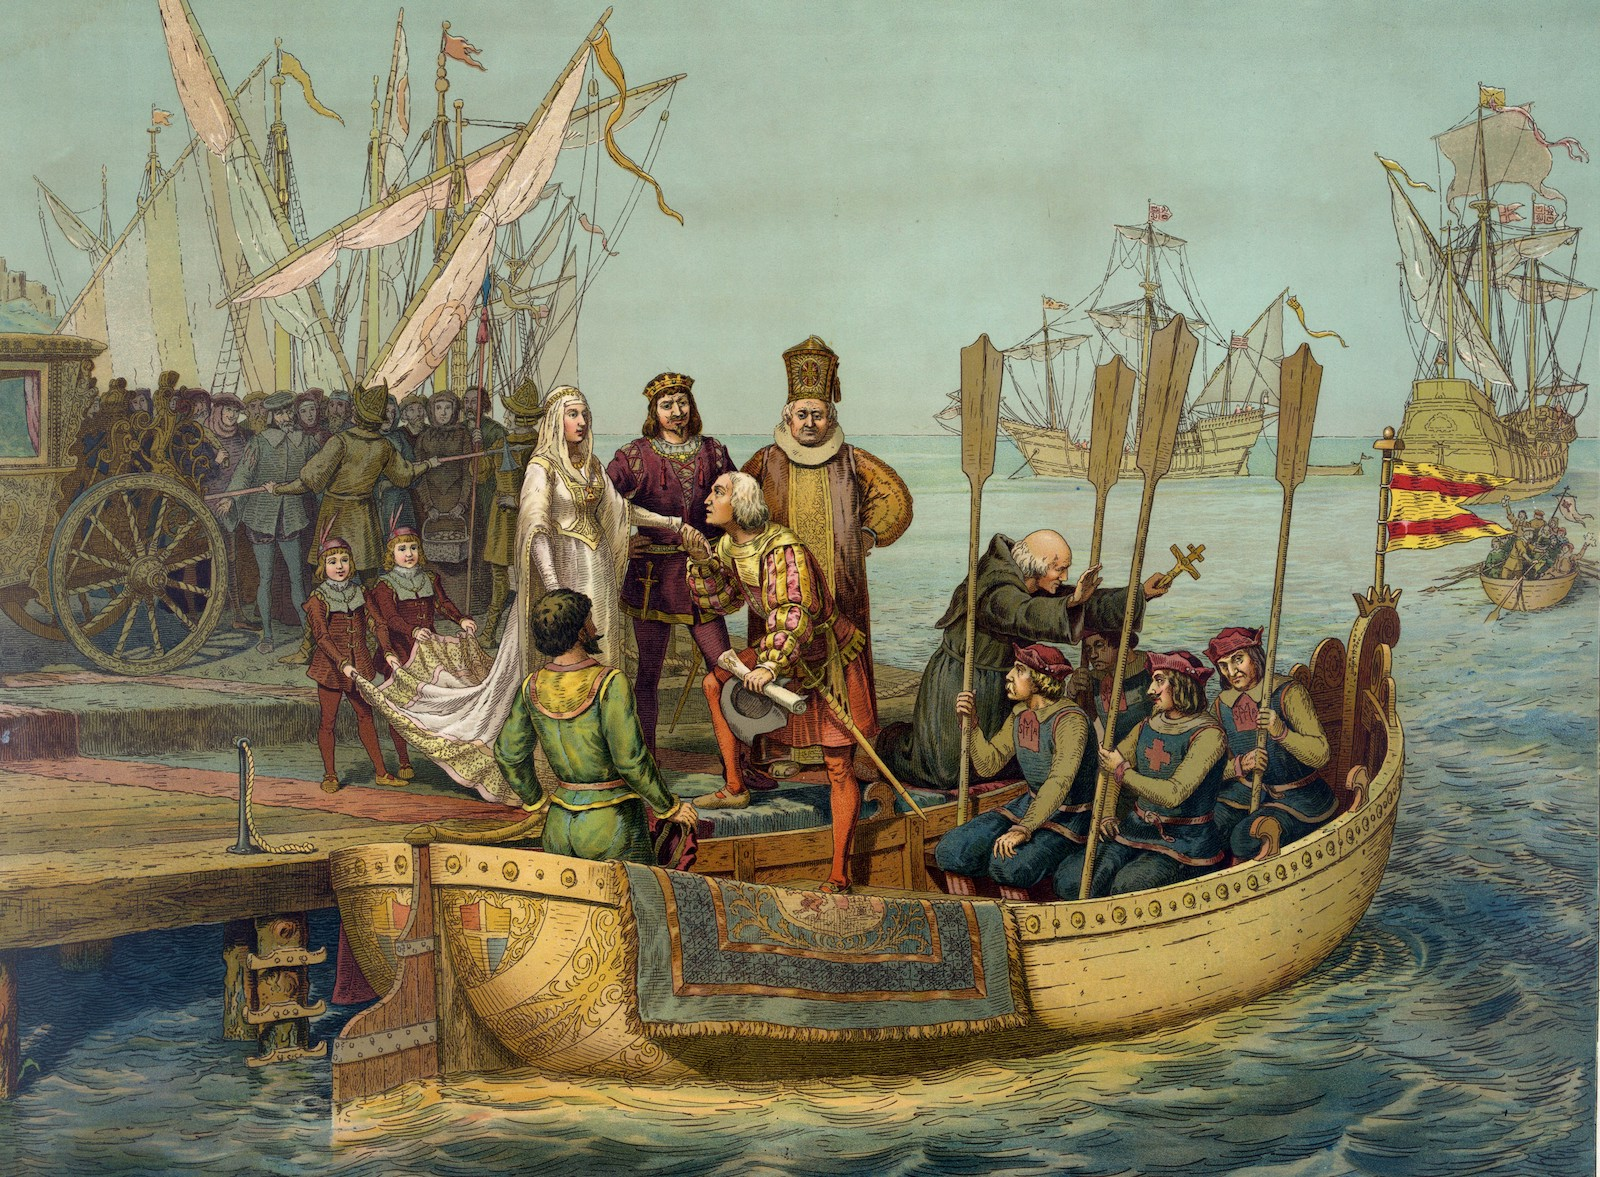 Christopher Columbus taking leave of Isabella of Castile and Ferdinand II of Aragon before setting out on his first voyage to the New World, August 8, 1492. Photo: AFP / Ann Ronan Picture Library